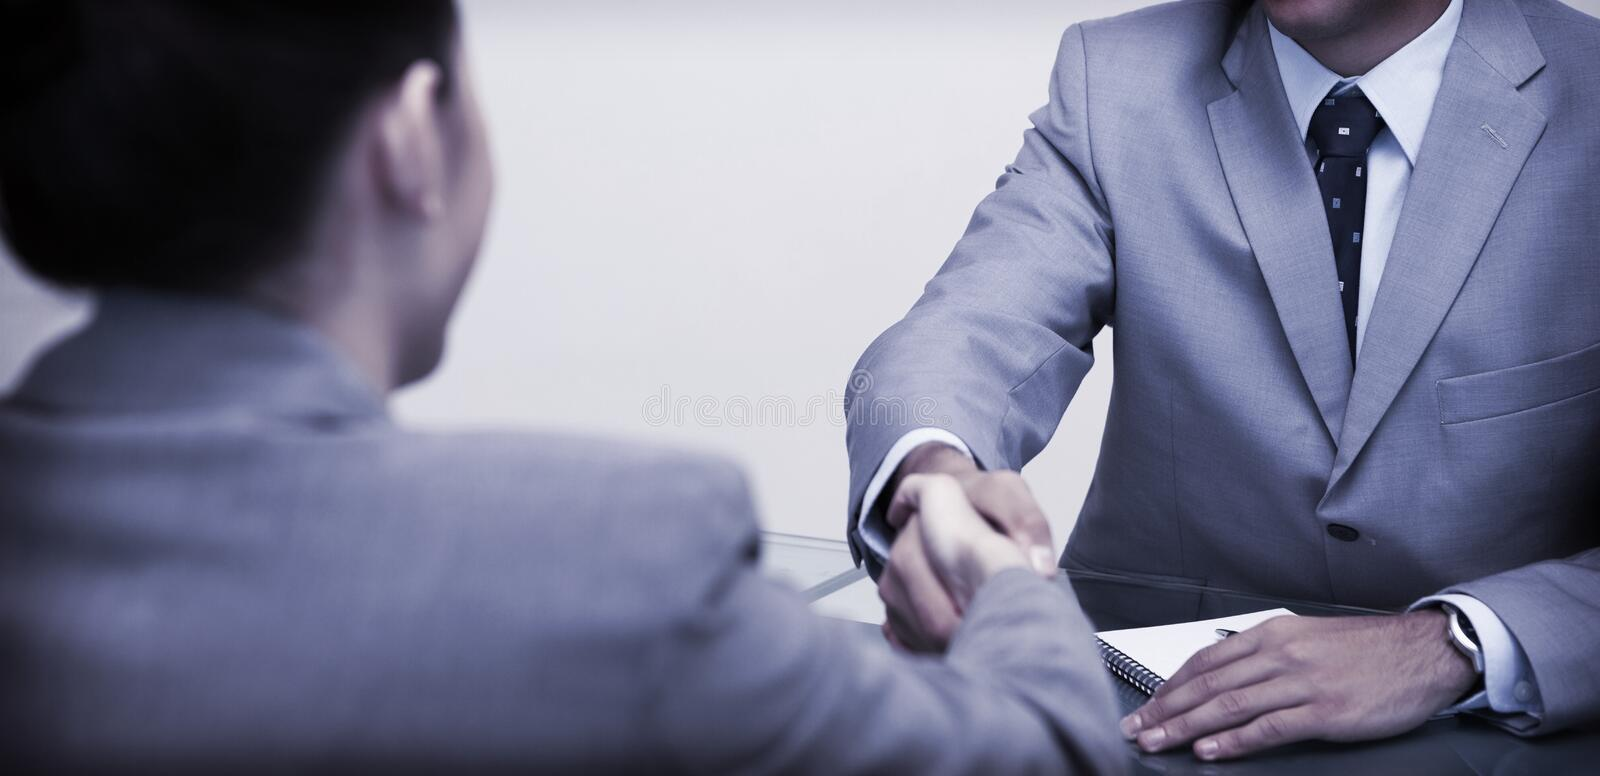 Business partners sitting at a table shaking hands royalty free stock photo